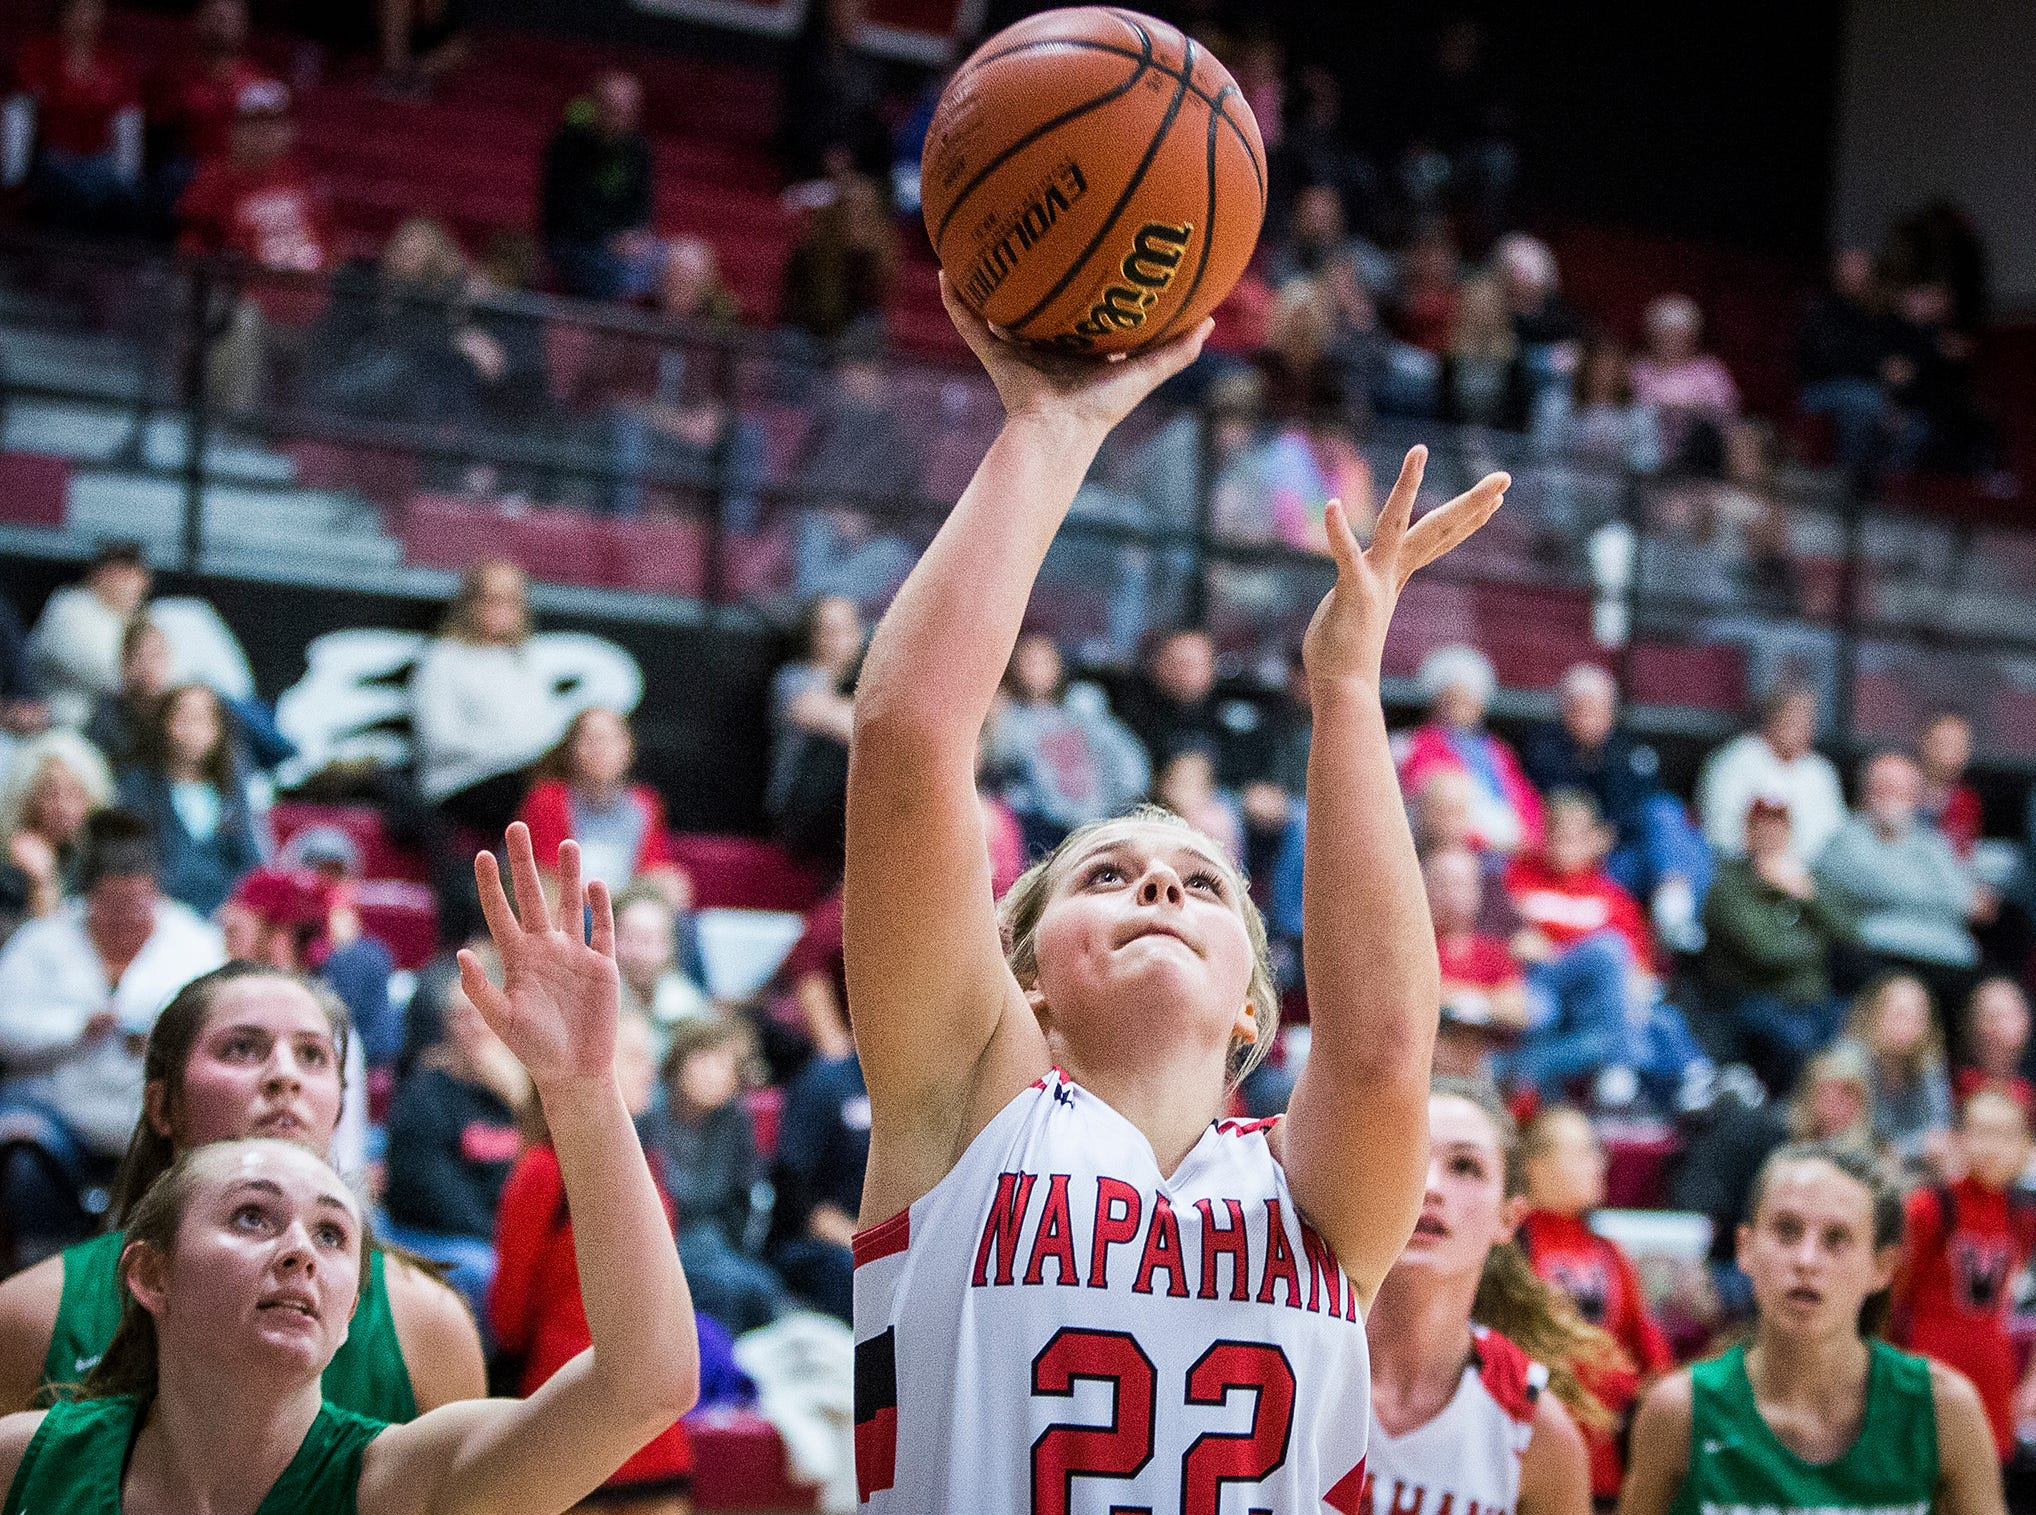 Wapahani's Lexi Humbert shoots past Yorktown's defense during their game at Wapahani High School Tuesday, Dec. 4, 2018.